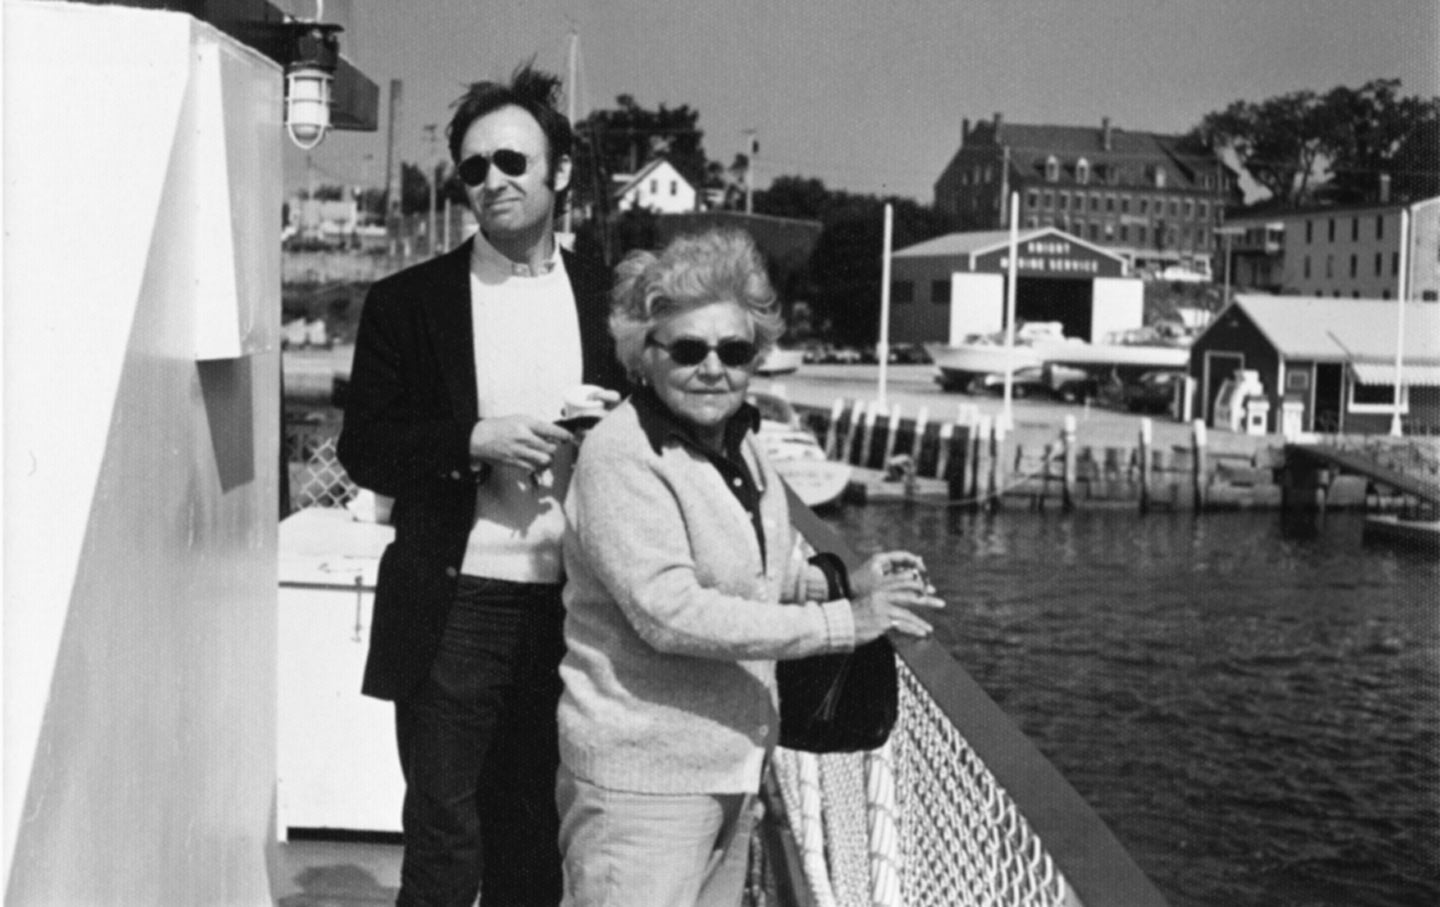 Hiding in Plain Sight: The Loneliness of Elizabeth Bishop